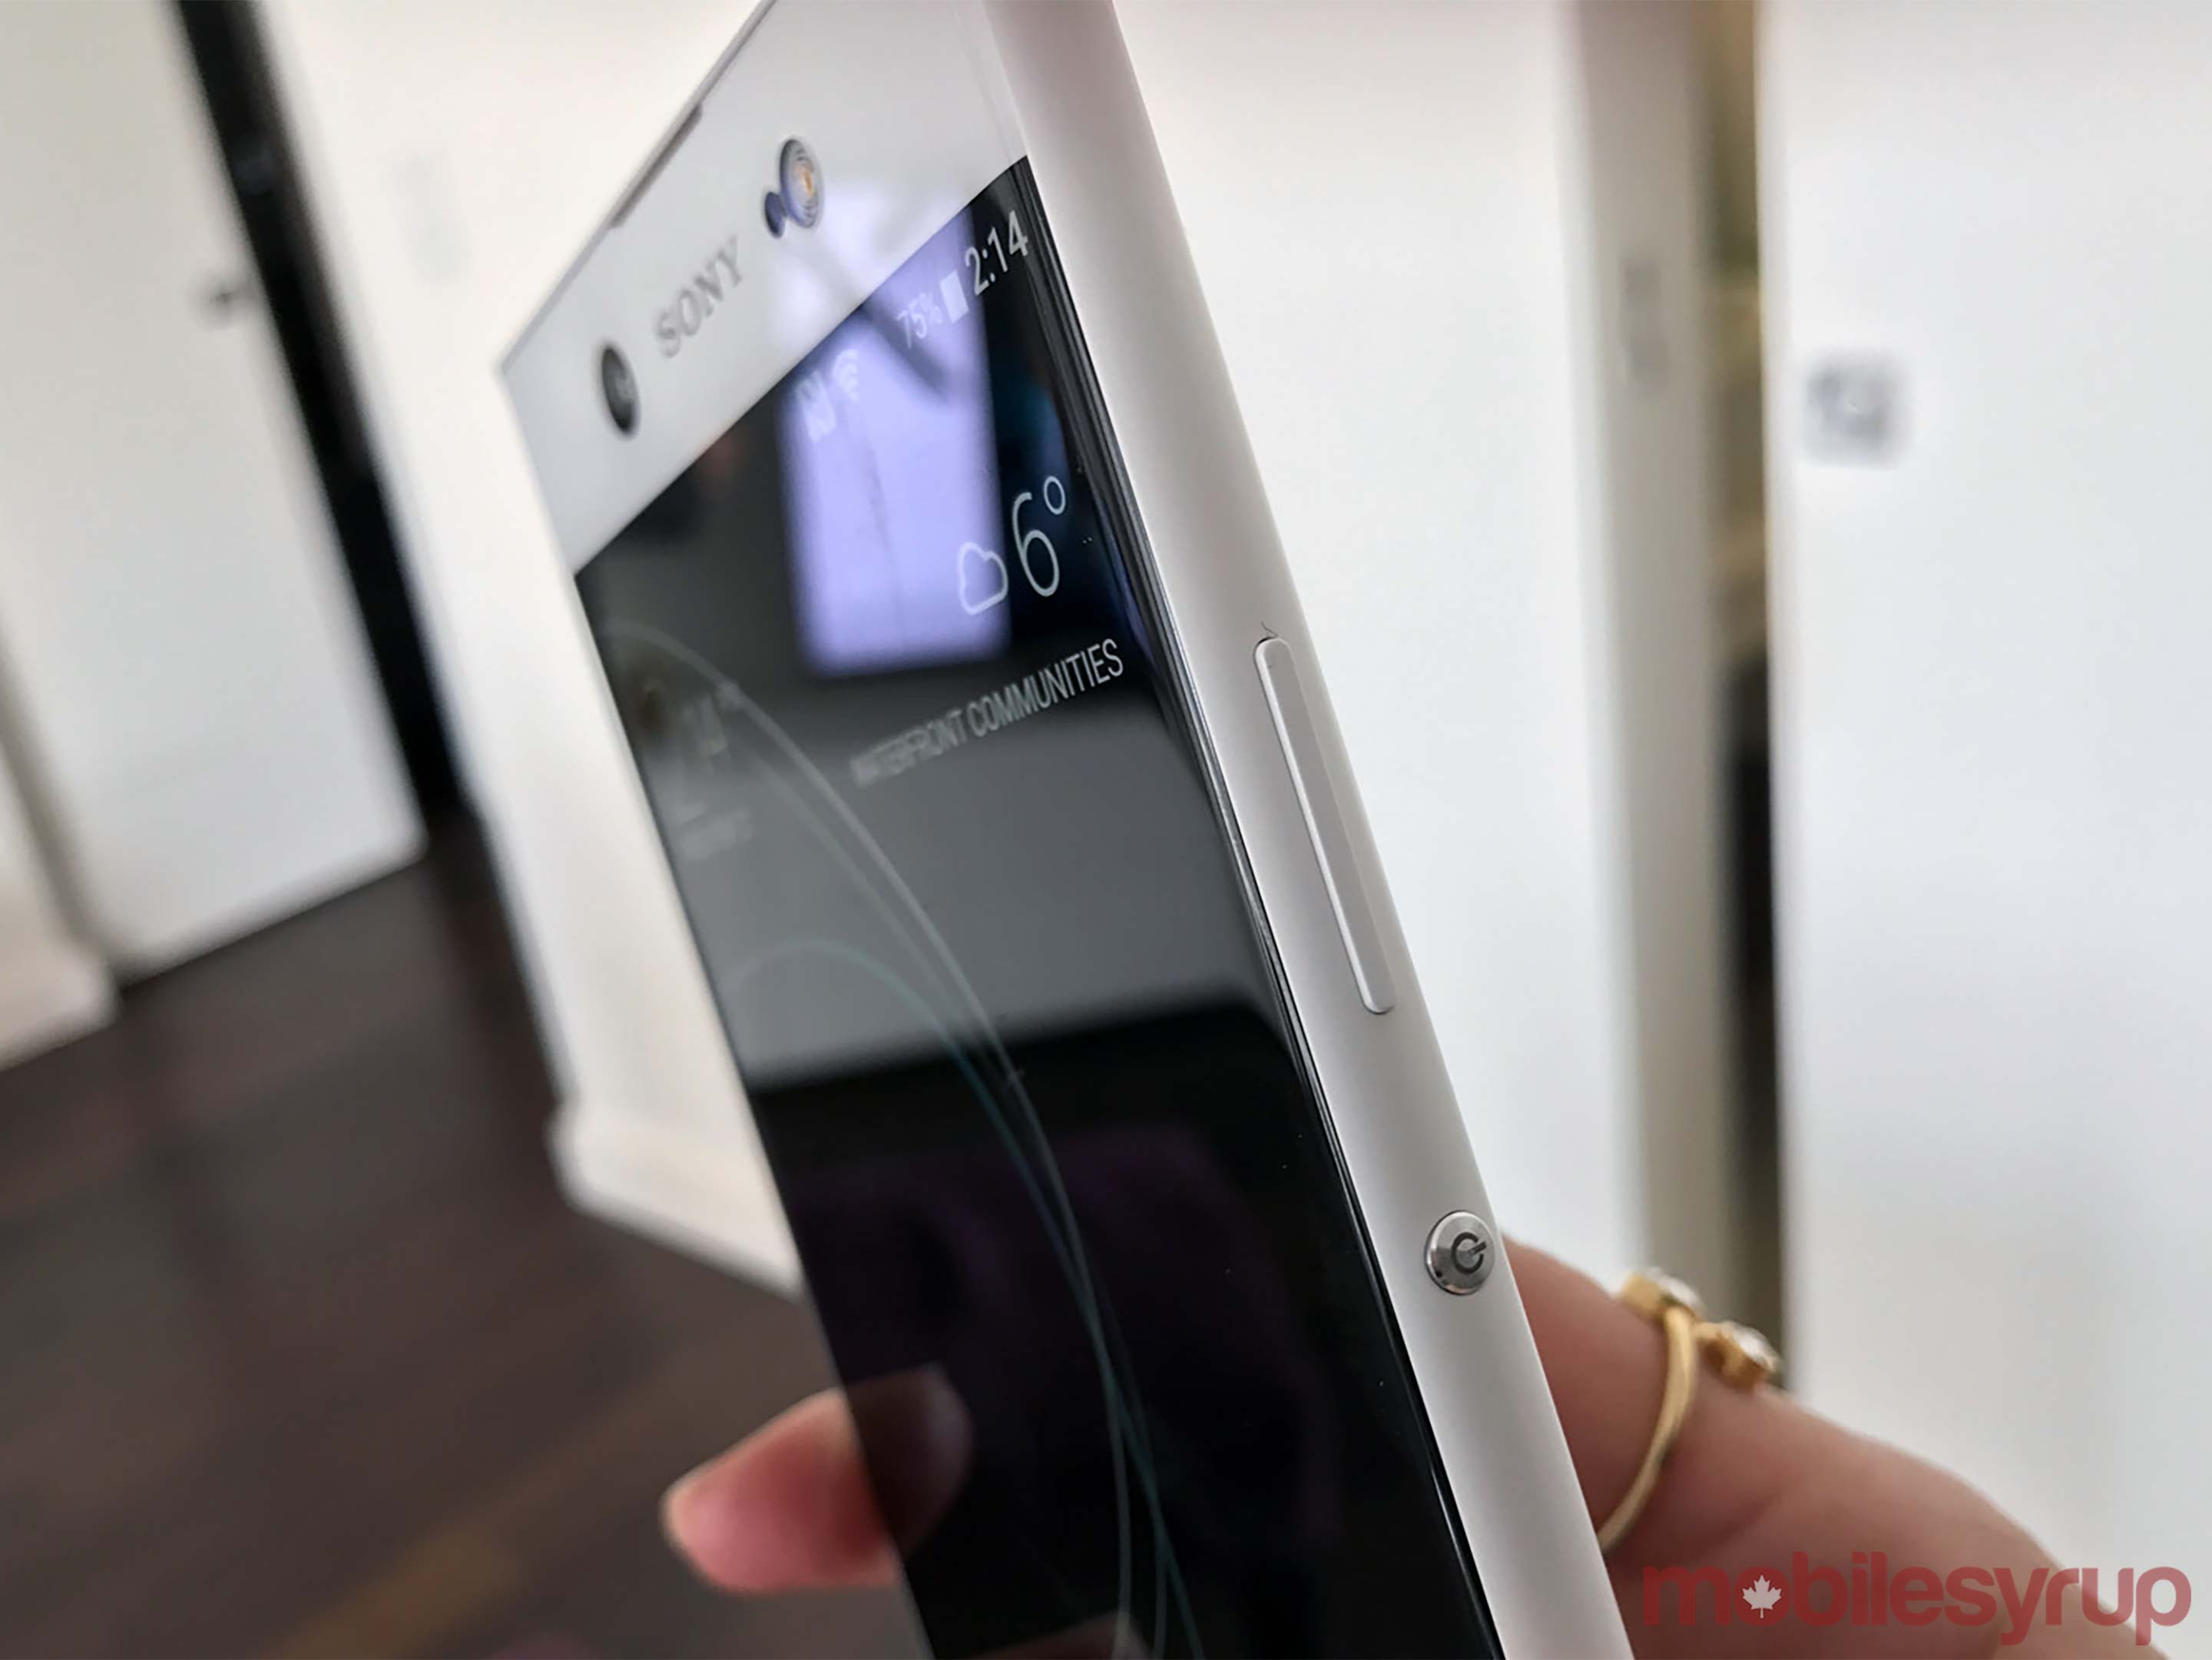 Side view of Xperia XA1 Ultra